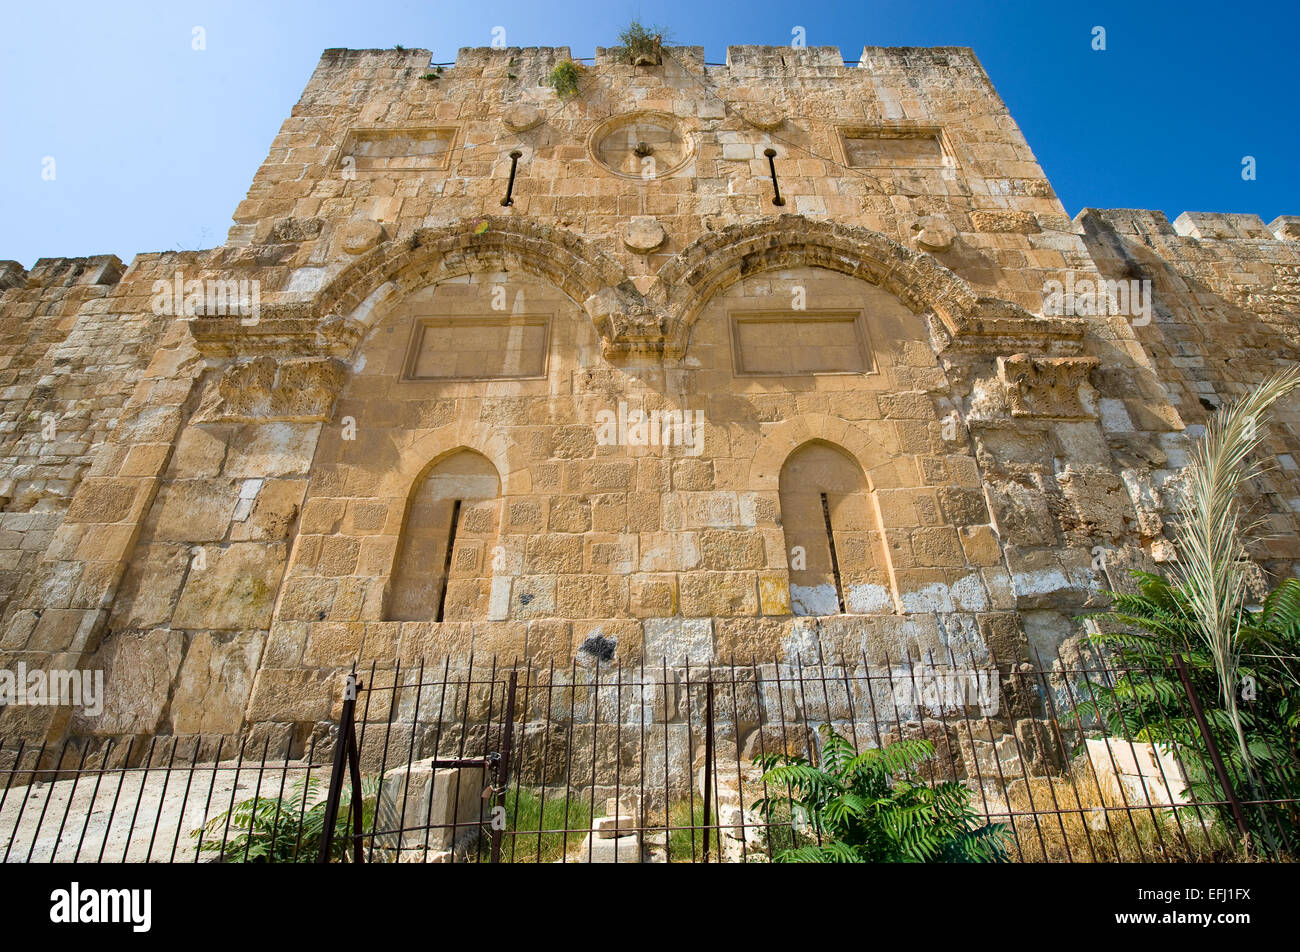 The Golden Gate on the east-side of the Temple mount of Jerusalem - Stock Image